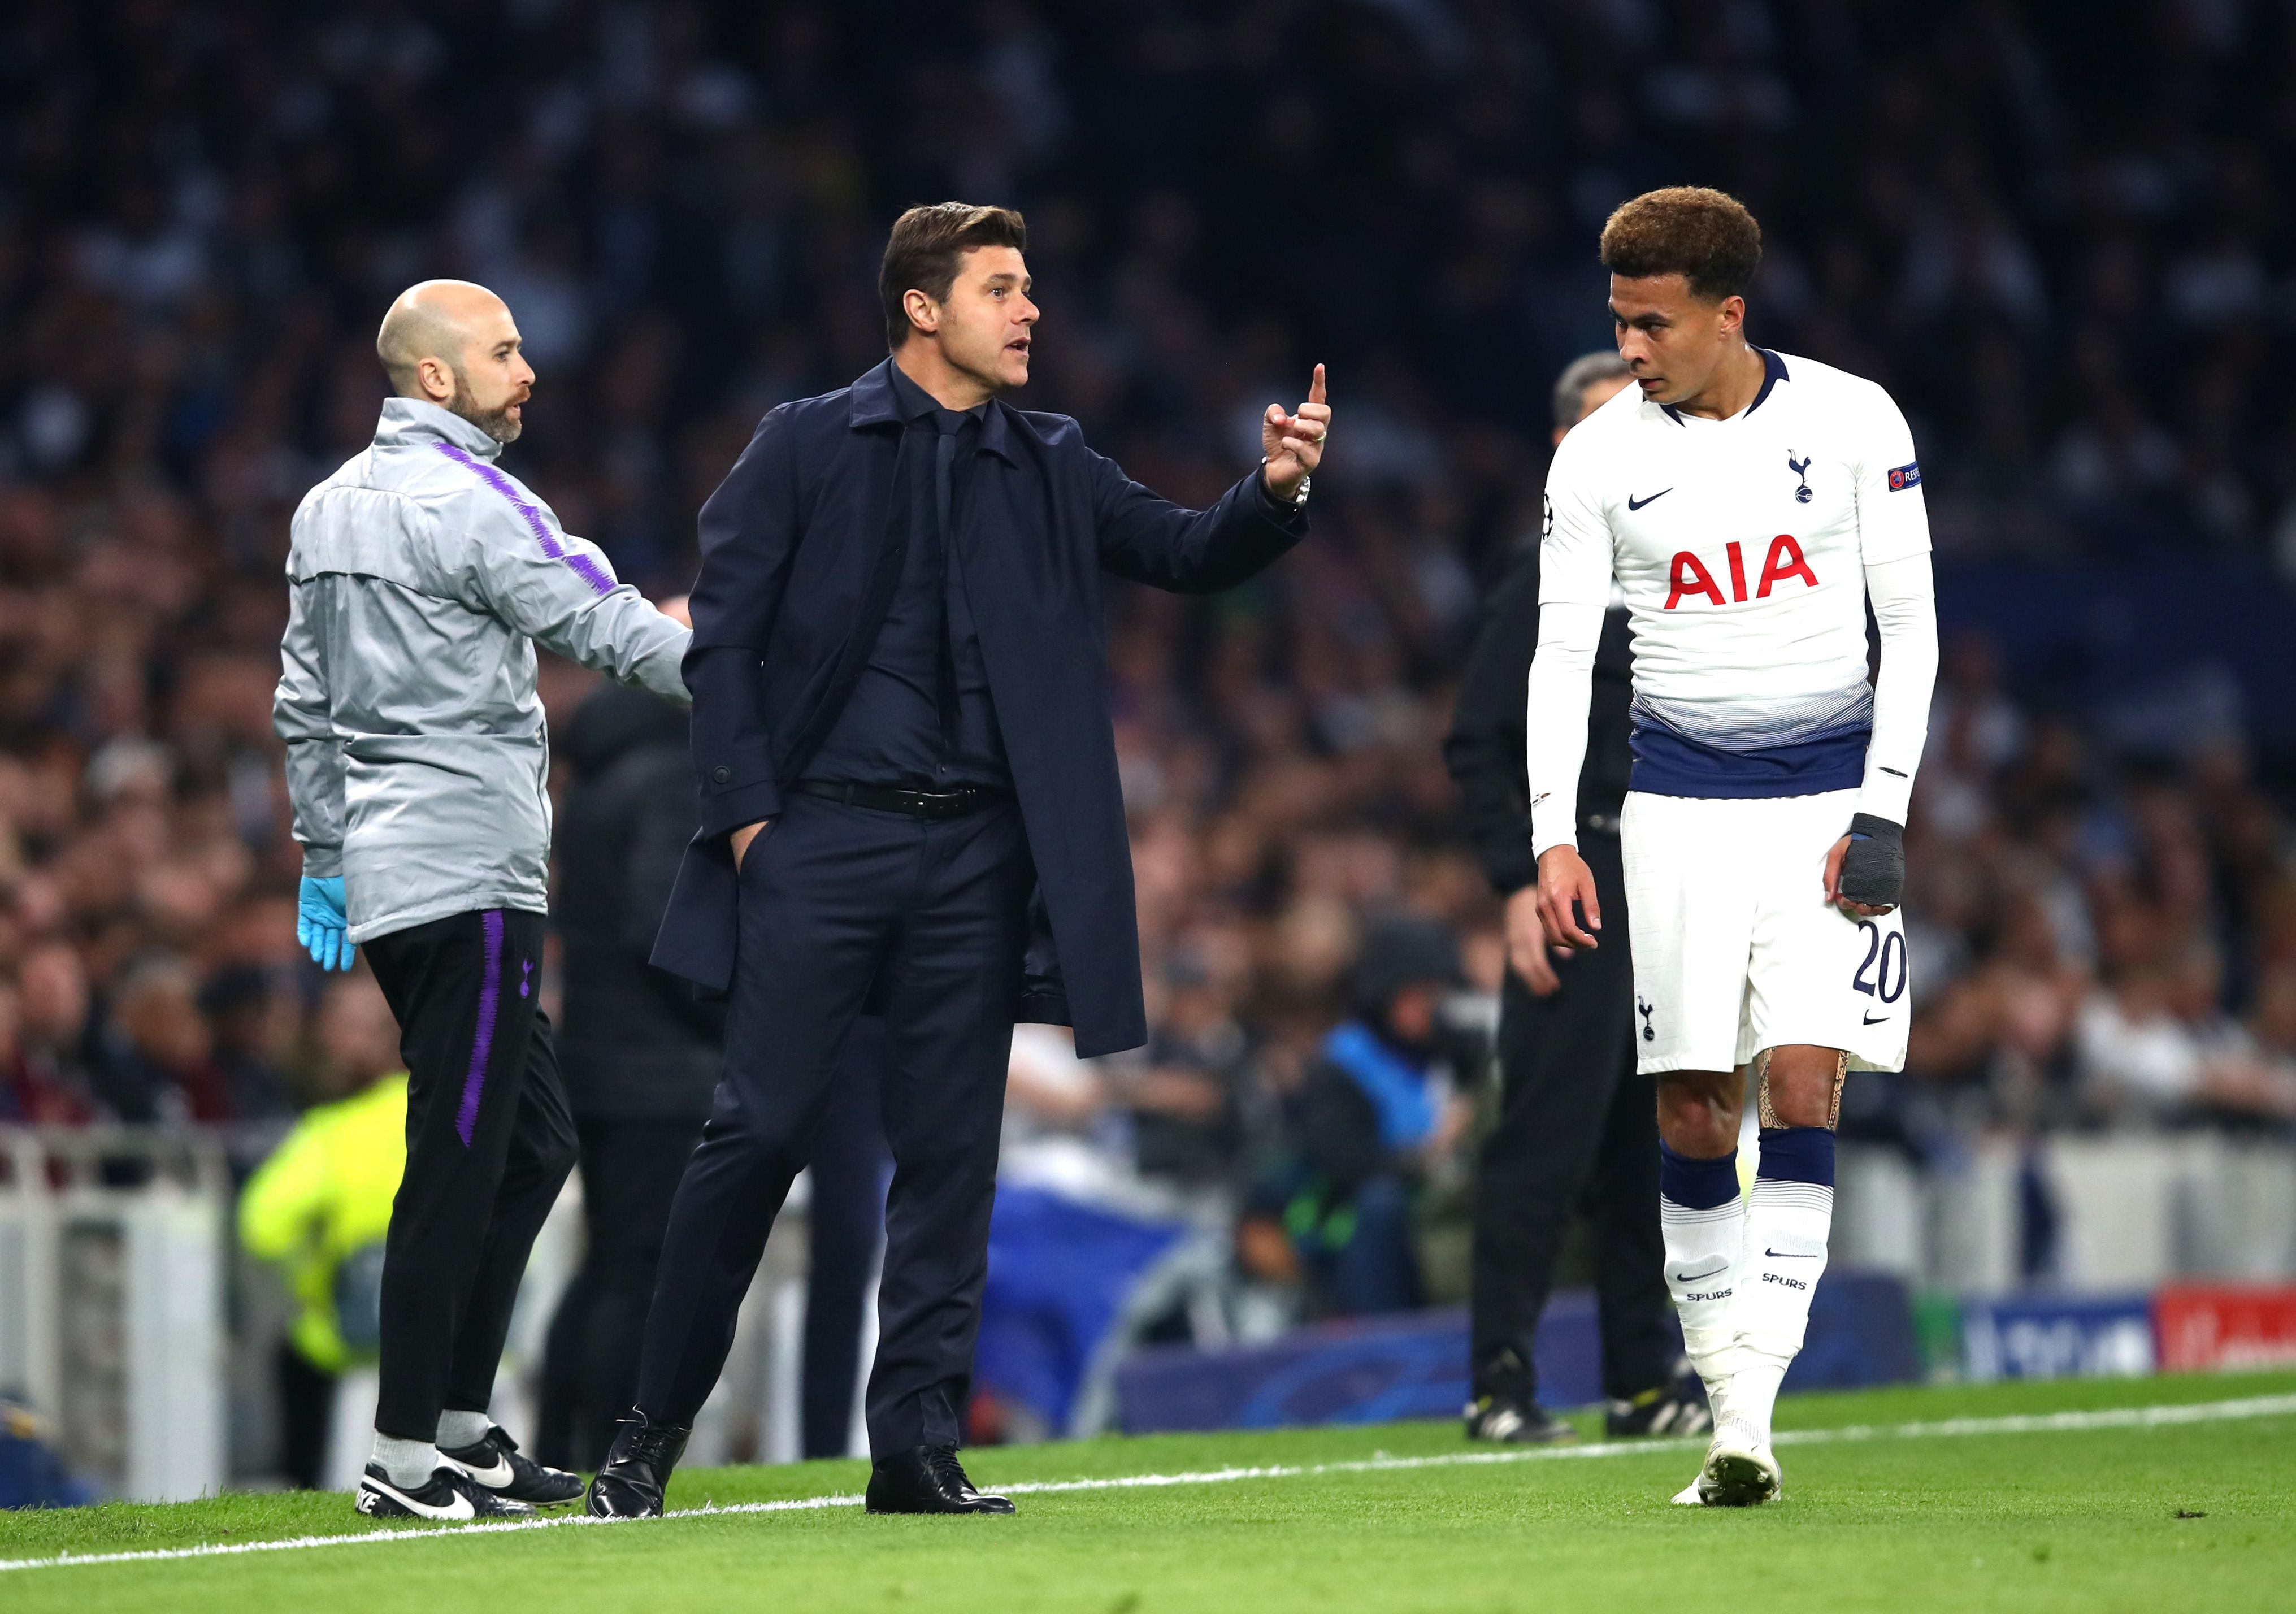 Mauricio Pochettino On The Brink Of Winning First Trophy As Manager